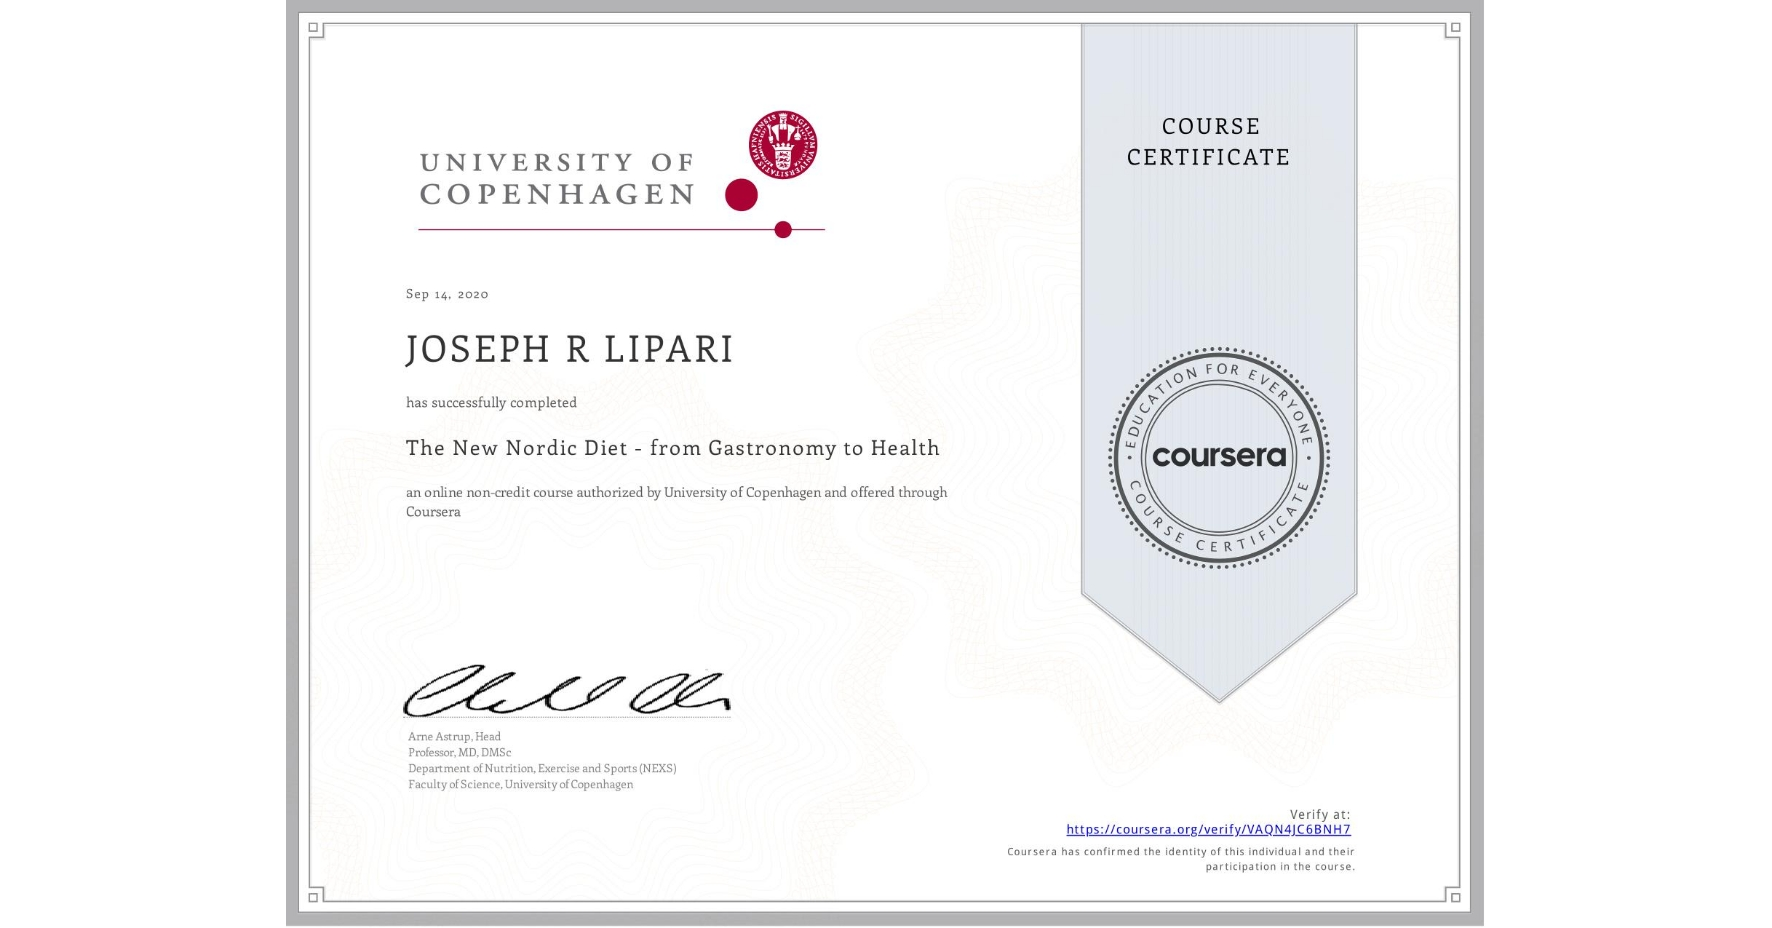 View certificate for JOSEPH R  LIPARI, The New Nordic Diet - from Gastronomy to Health , an online non-credit course authorized by University of Copenhagen and offered through Coursera